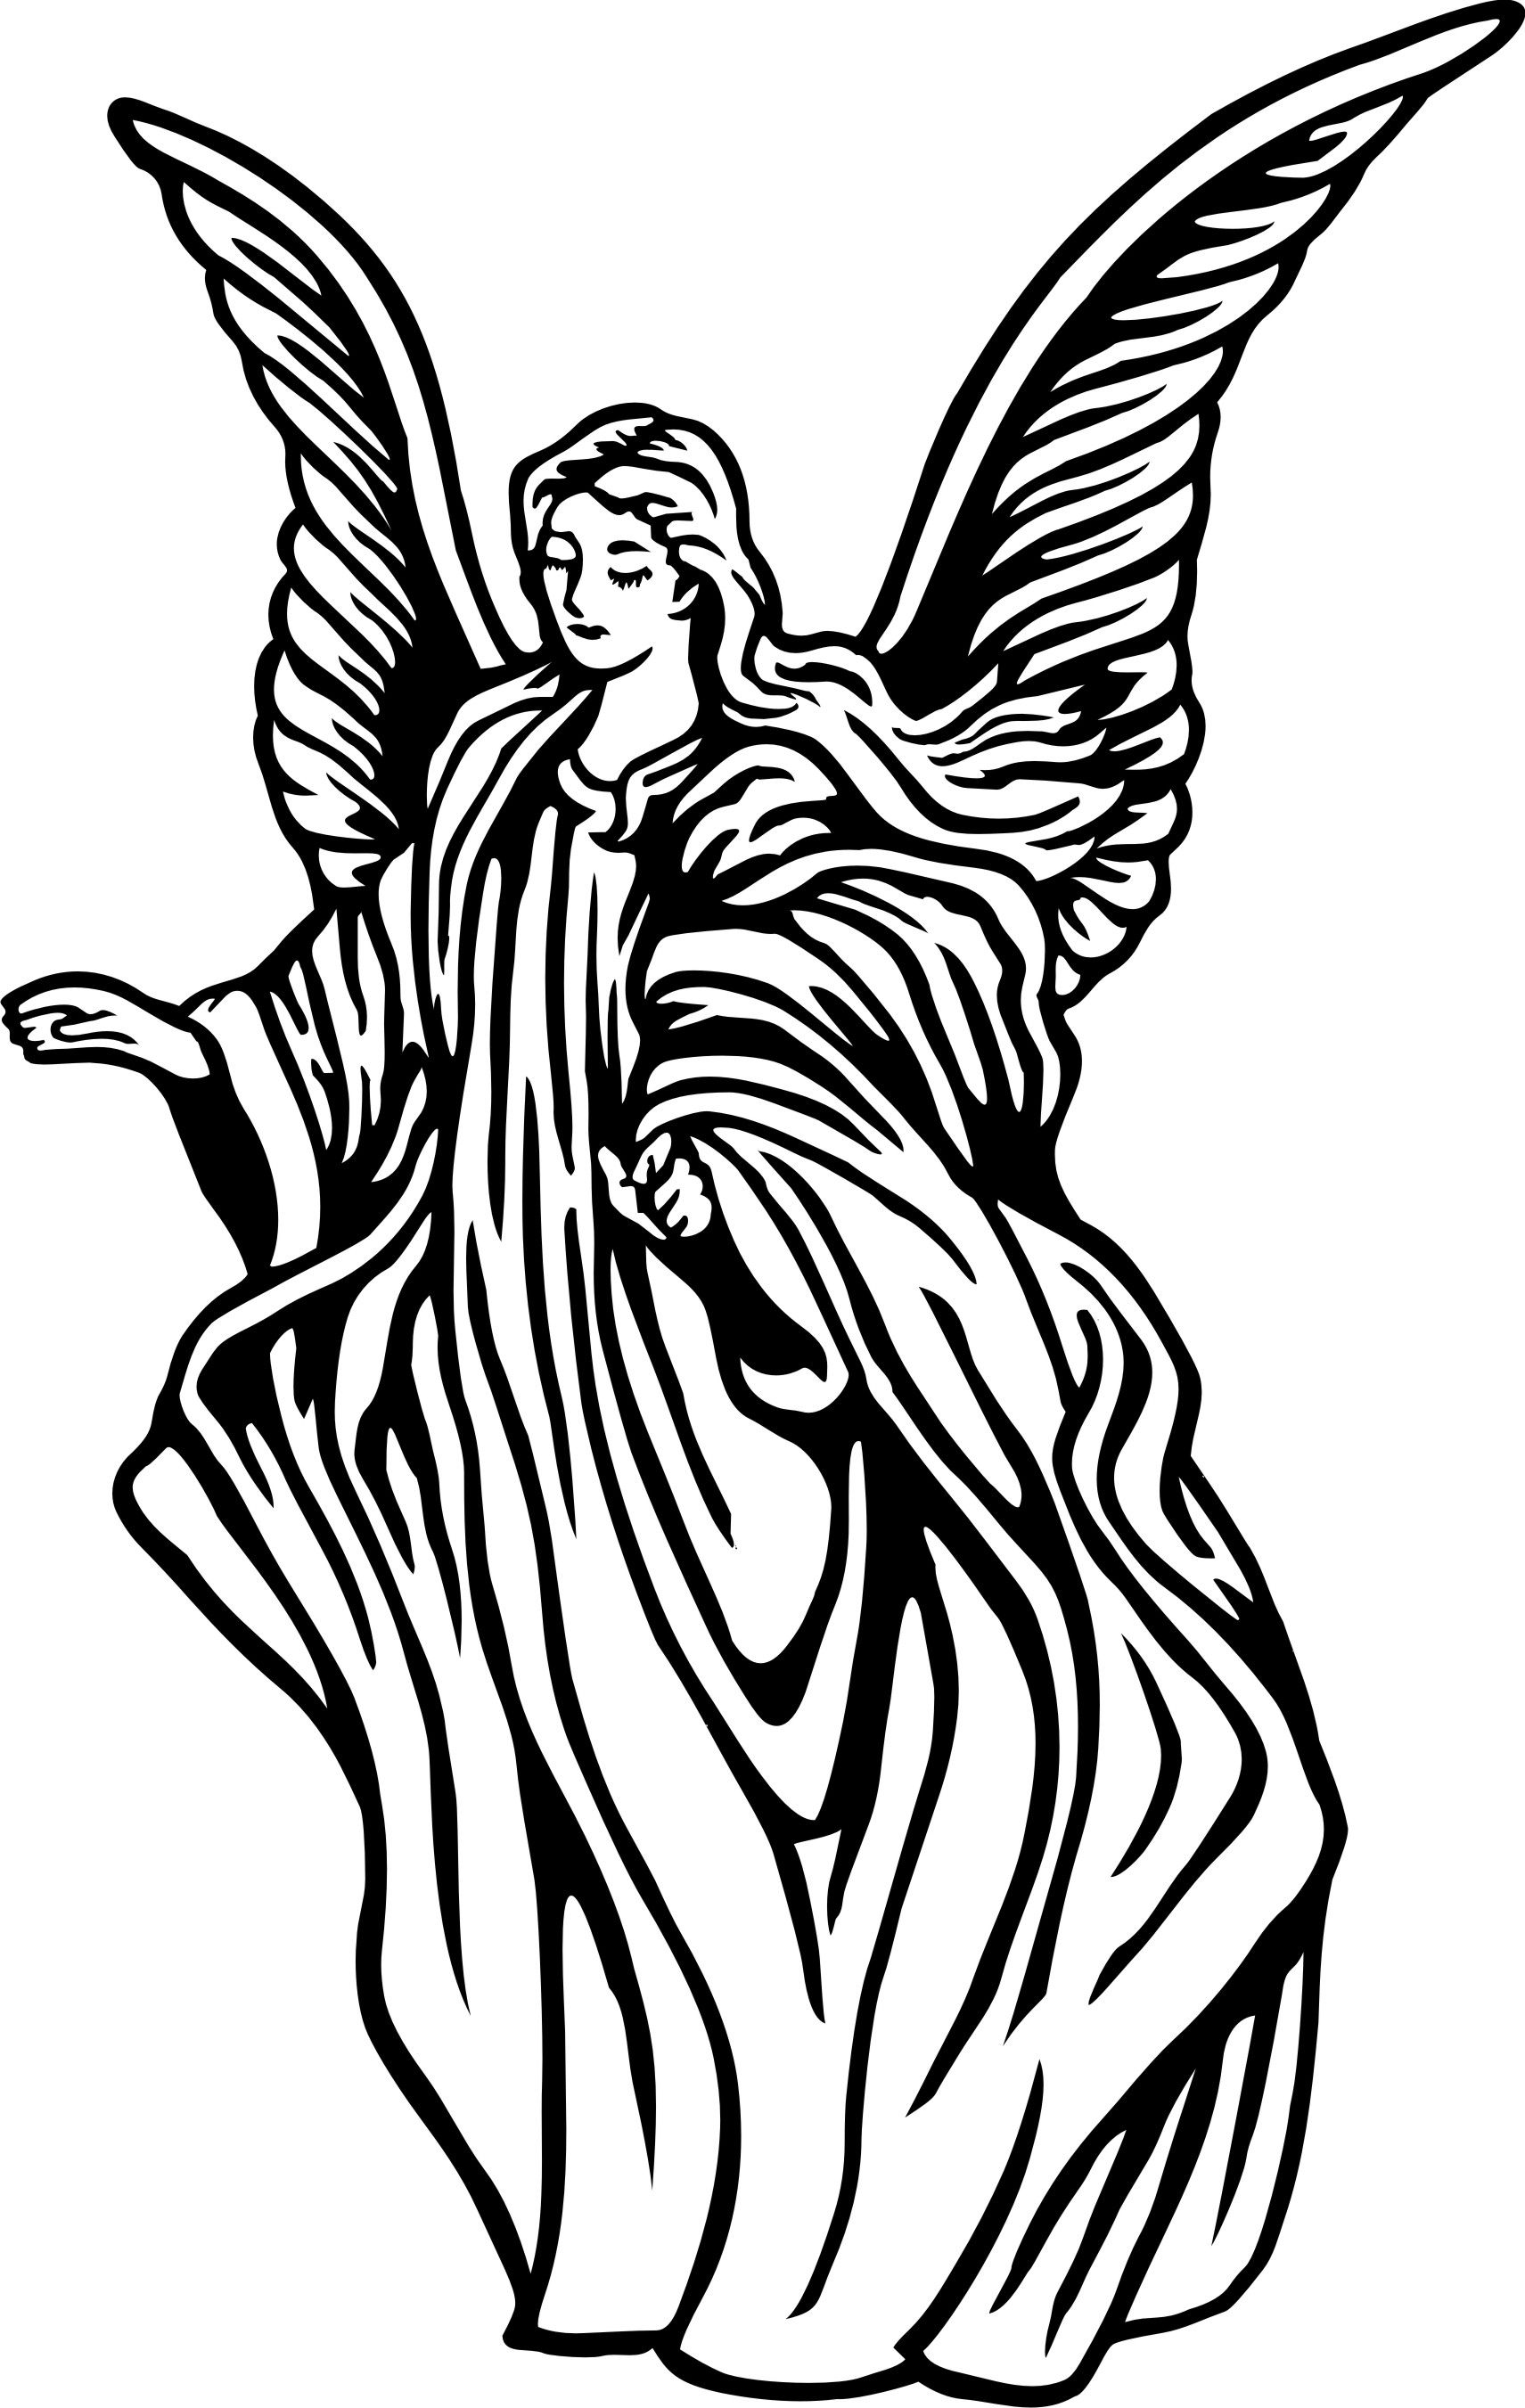 Image Title Angel Drawing Angel Wings Clip Art Angel Clipart